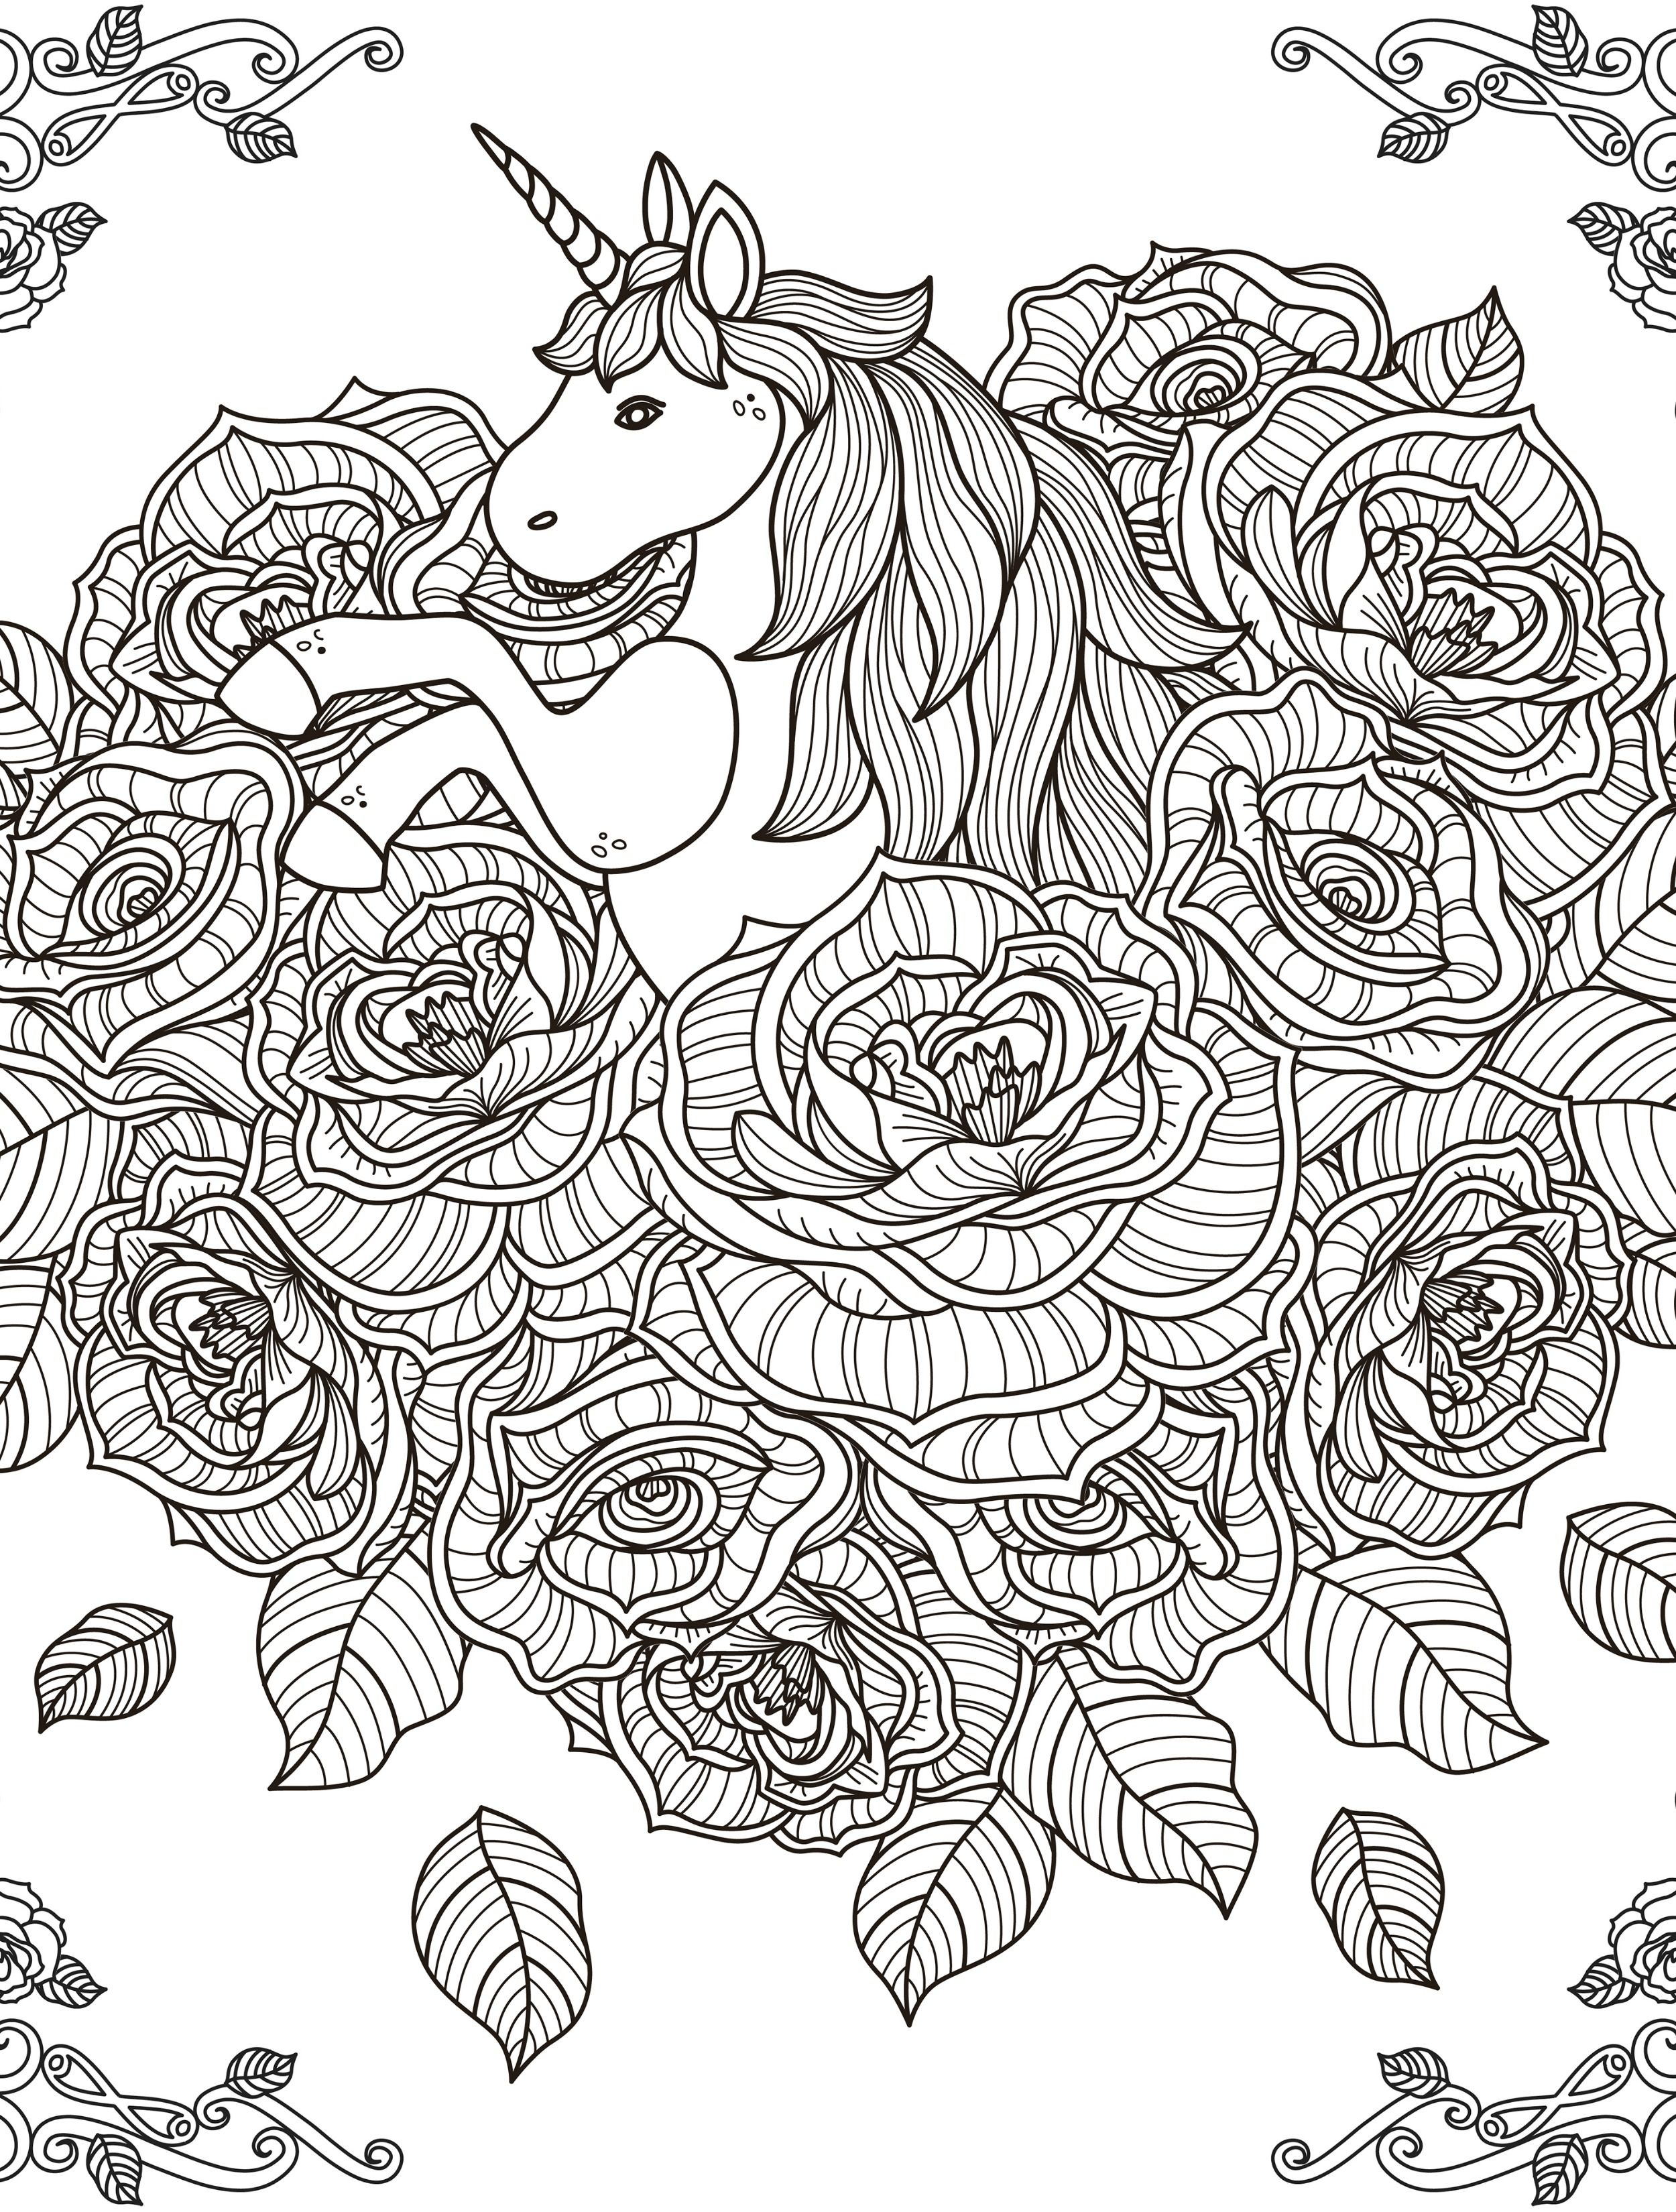 unicorn coloring page for adults printable1 2 500—3 300